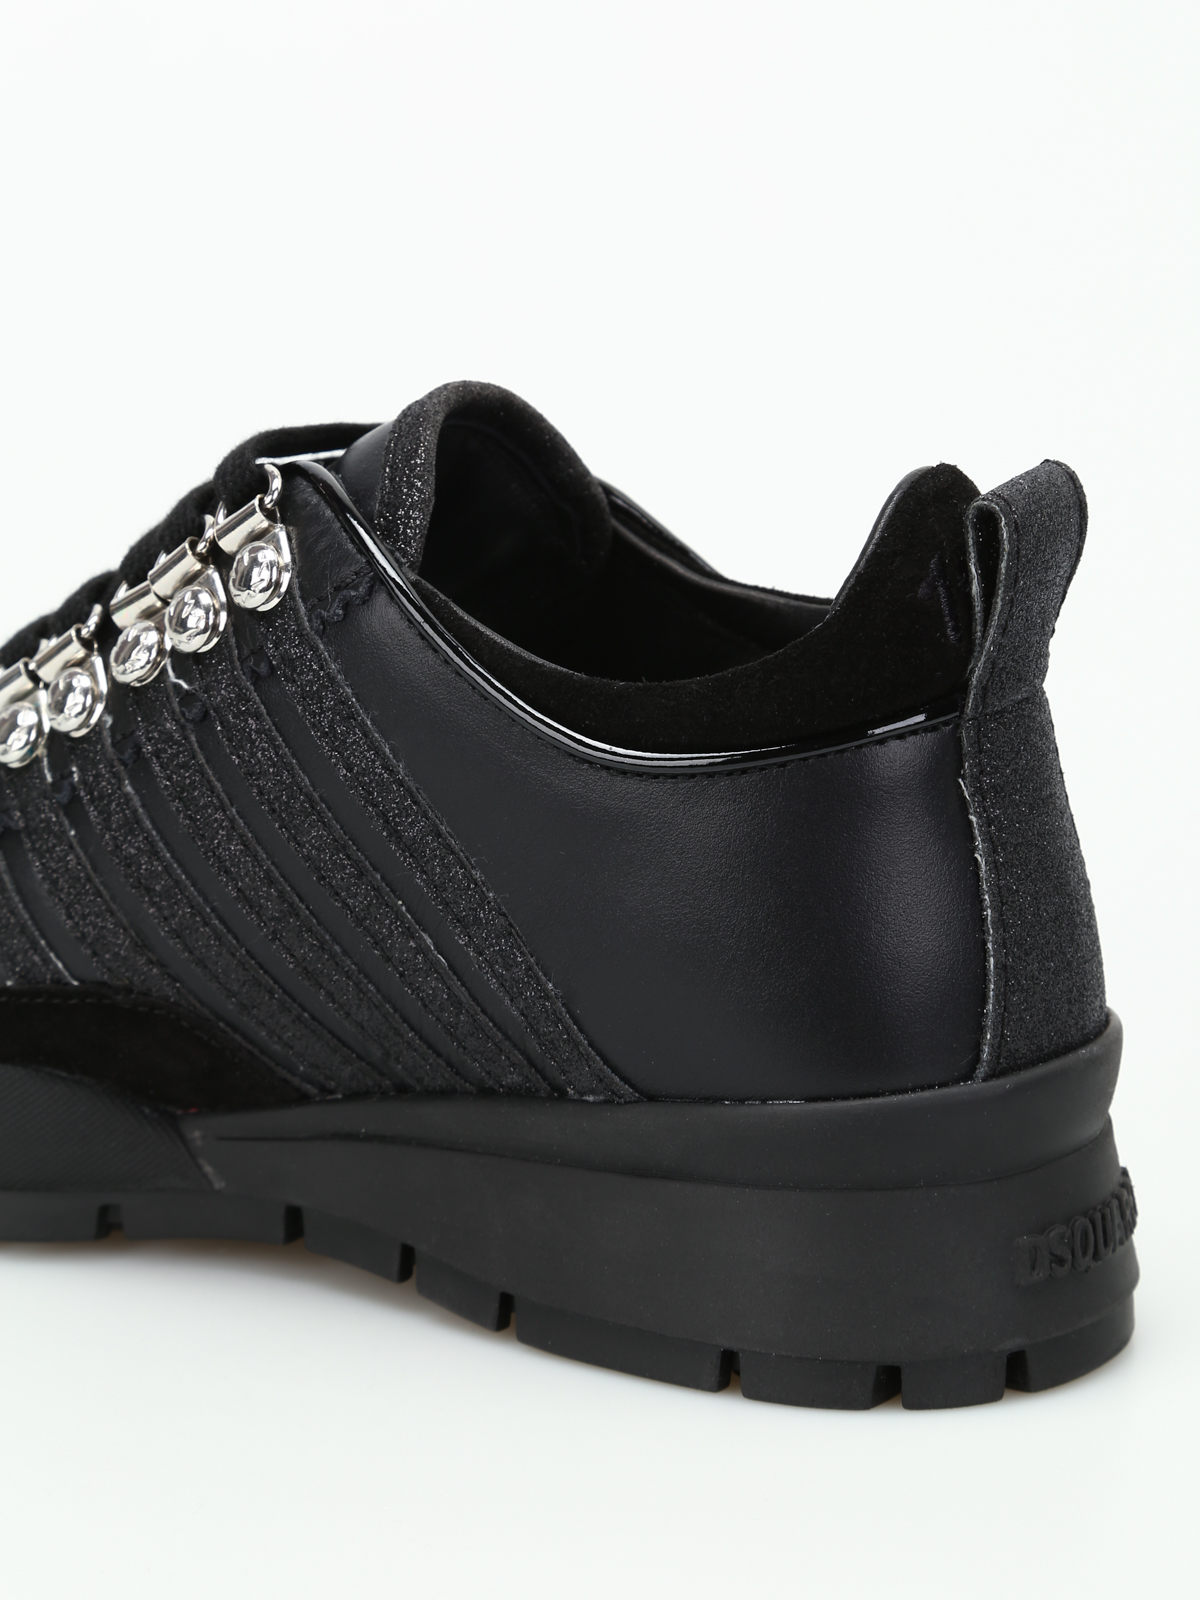 Dsquared2 - 251 black leather sneakers